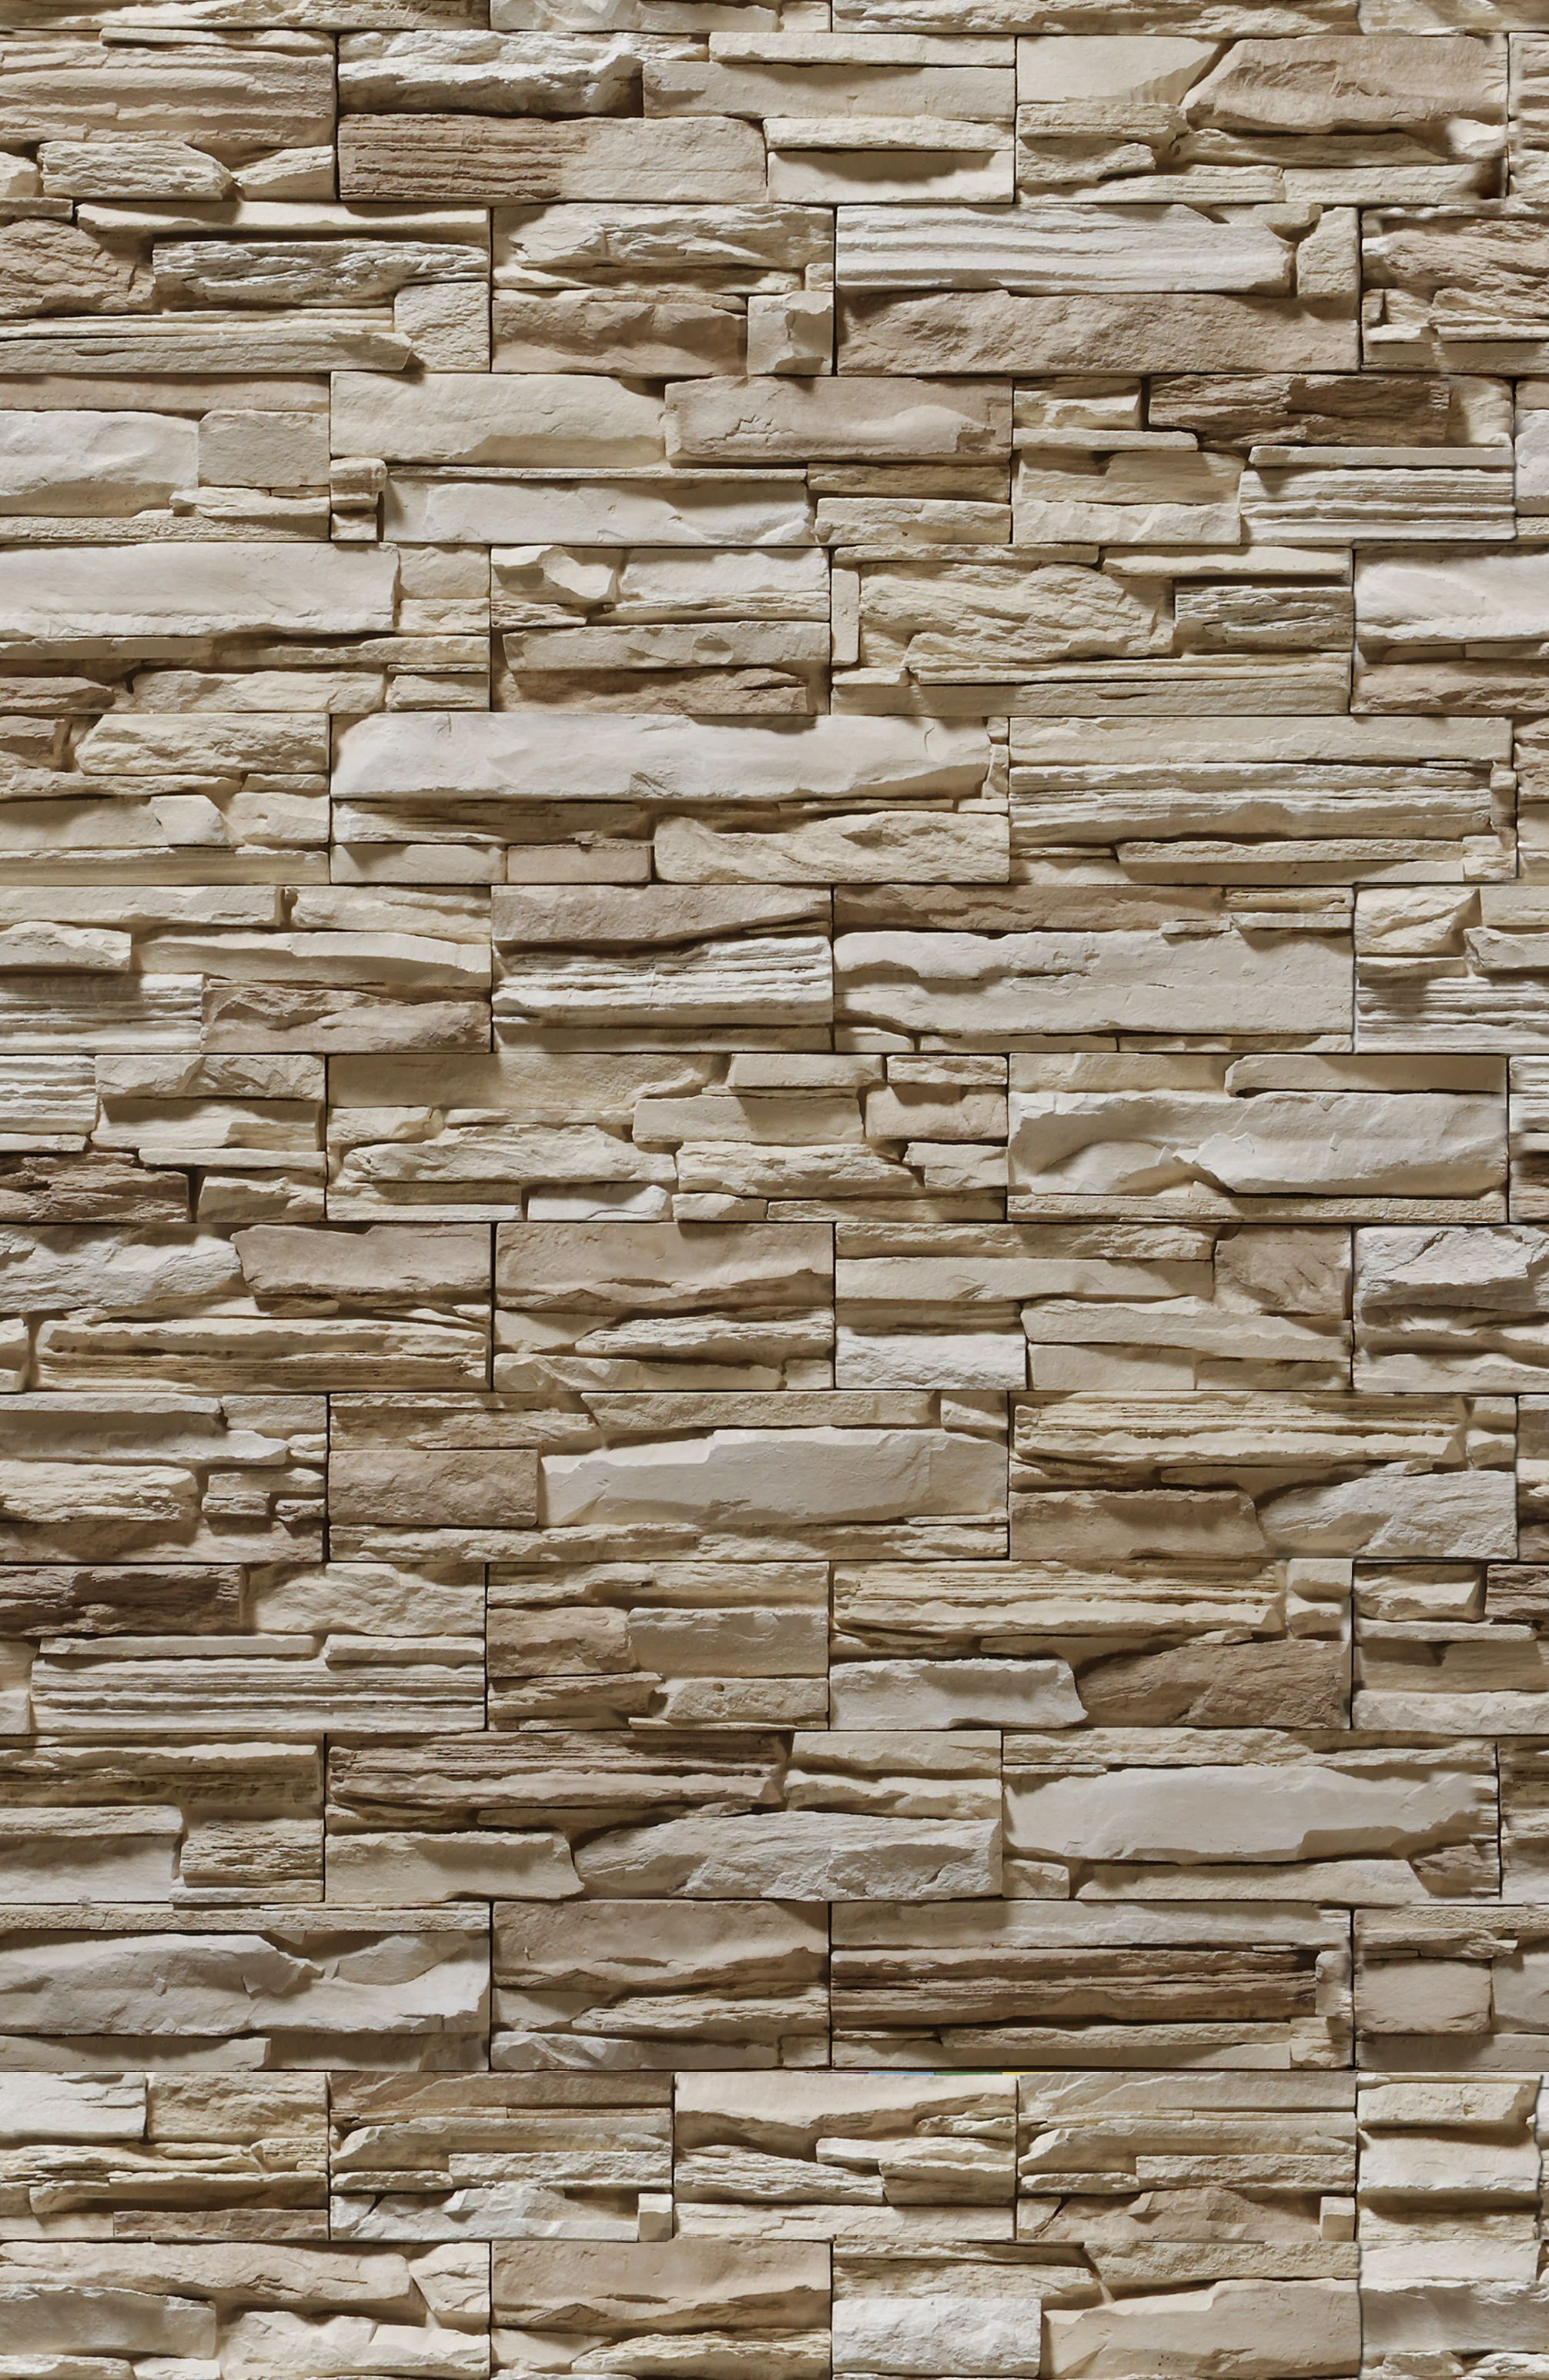 Stacked Like This But Pebbles Stone, Wall, Texture Stone, Stone